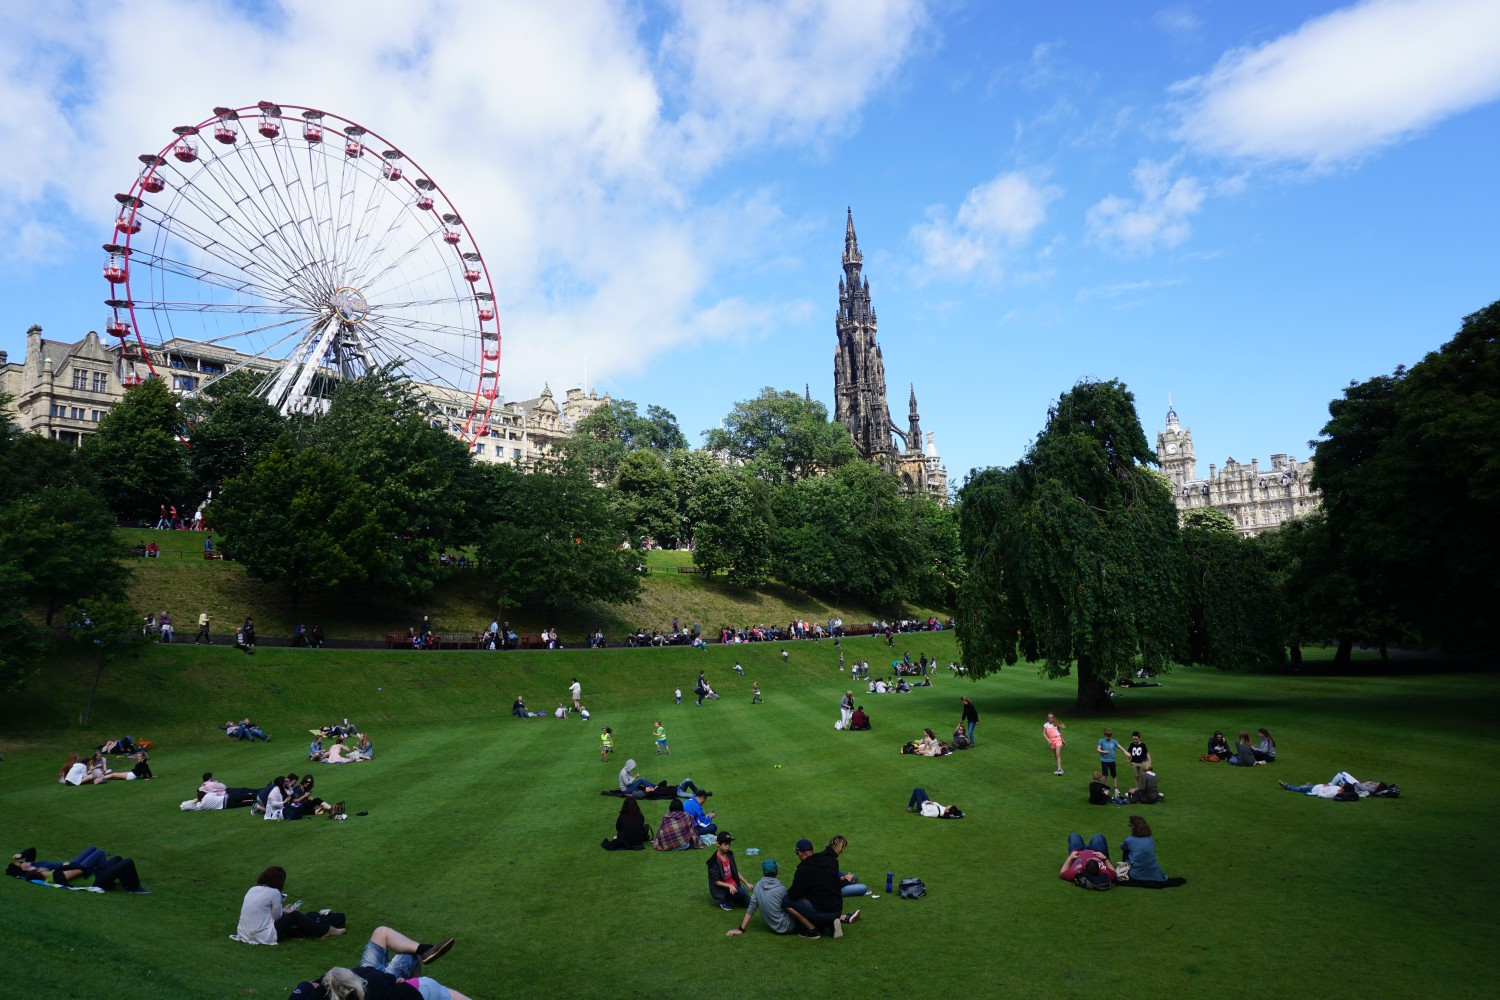 View of Princes Street Gardens in Edinburgh on a sunny day